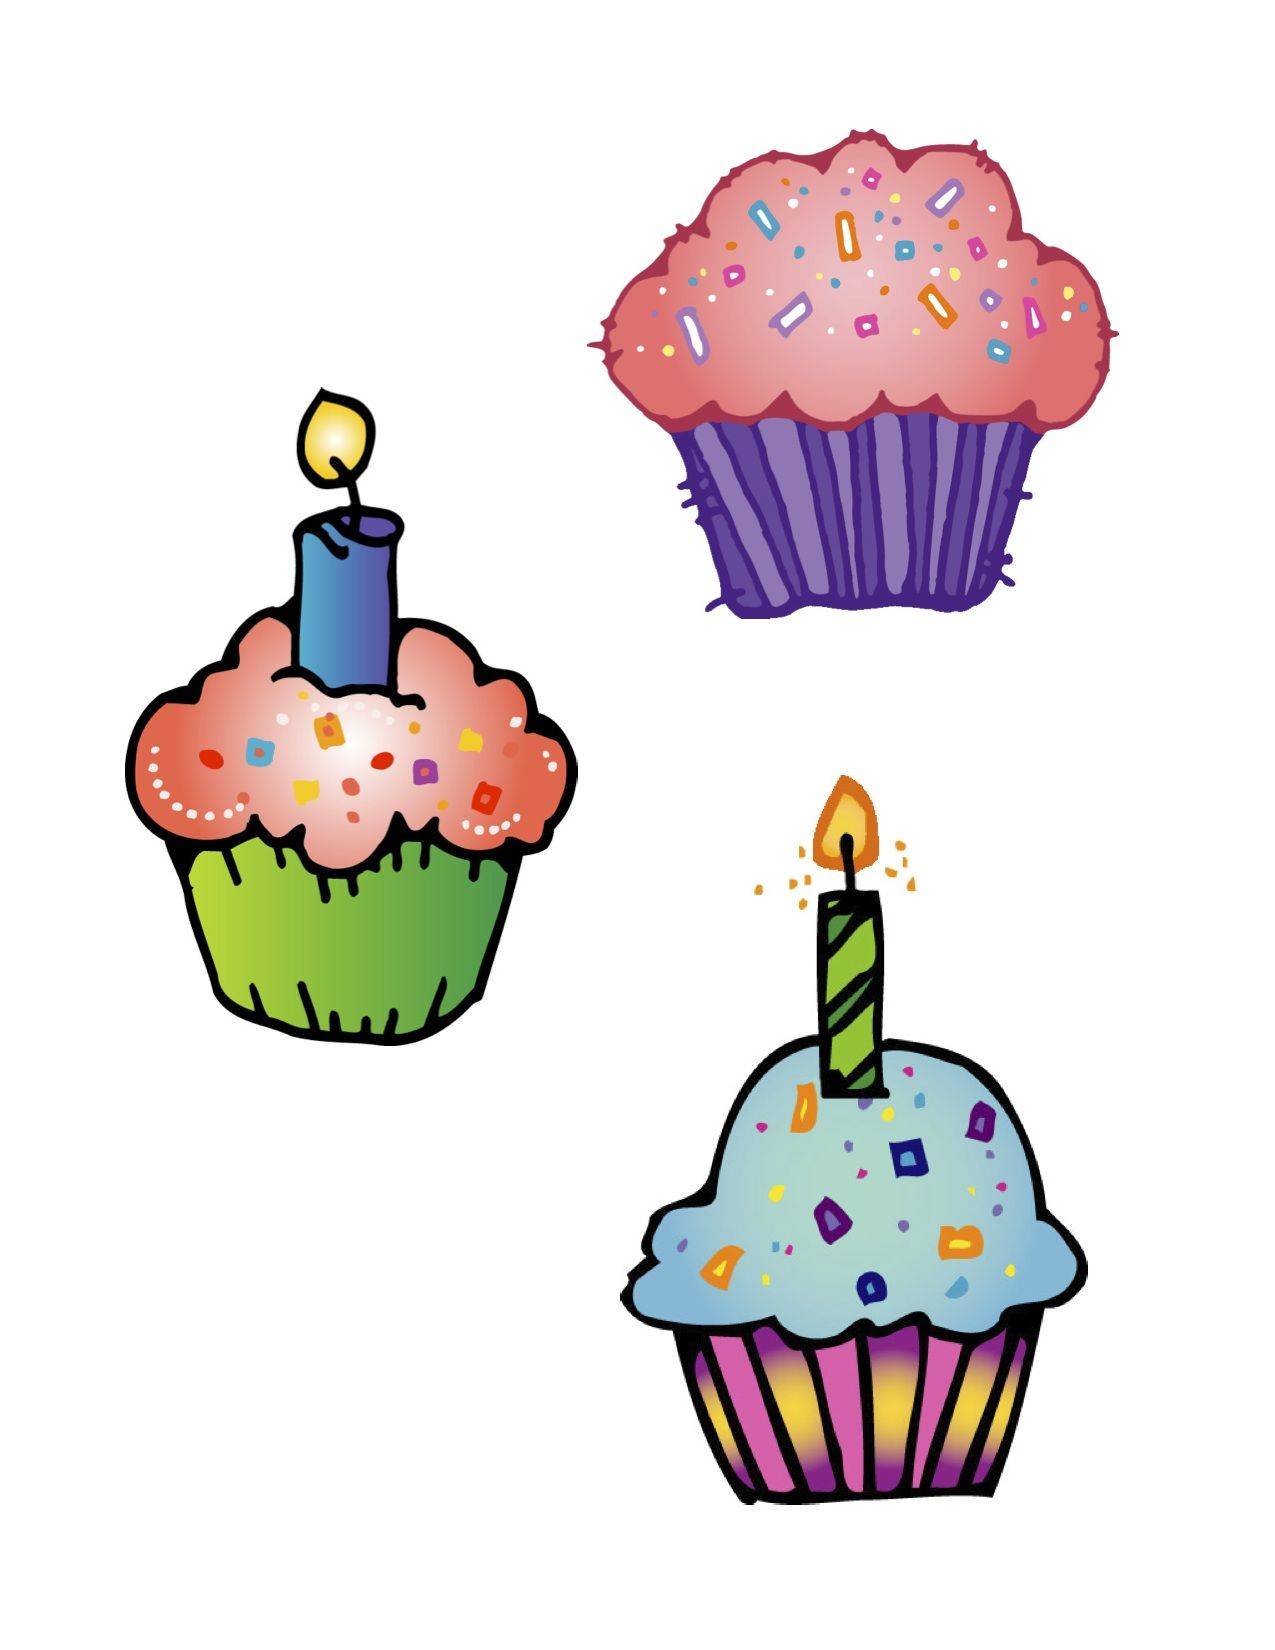 cupcake clipart for birthdays useful things pinterest clip art rh pinterest com birthday cupcake clipart free birthday cupcake clipart images